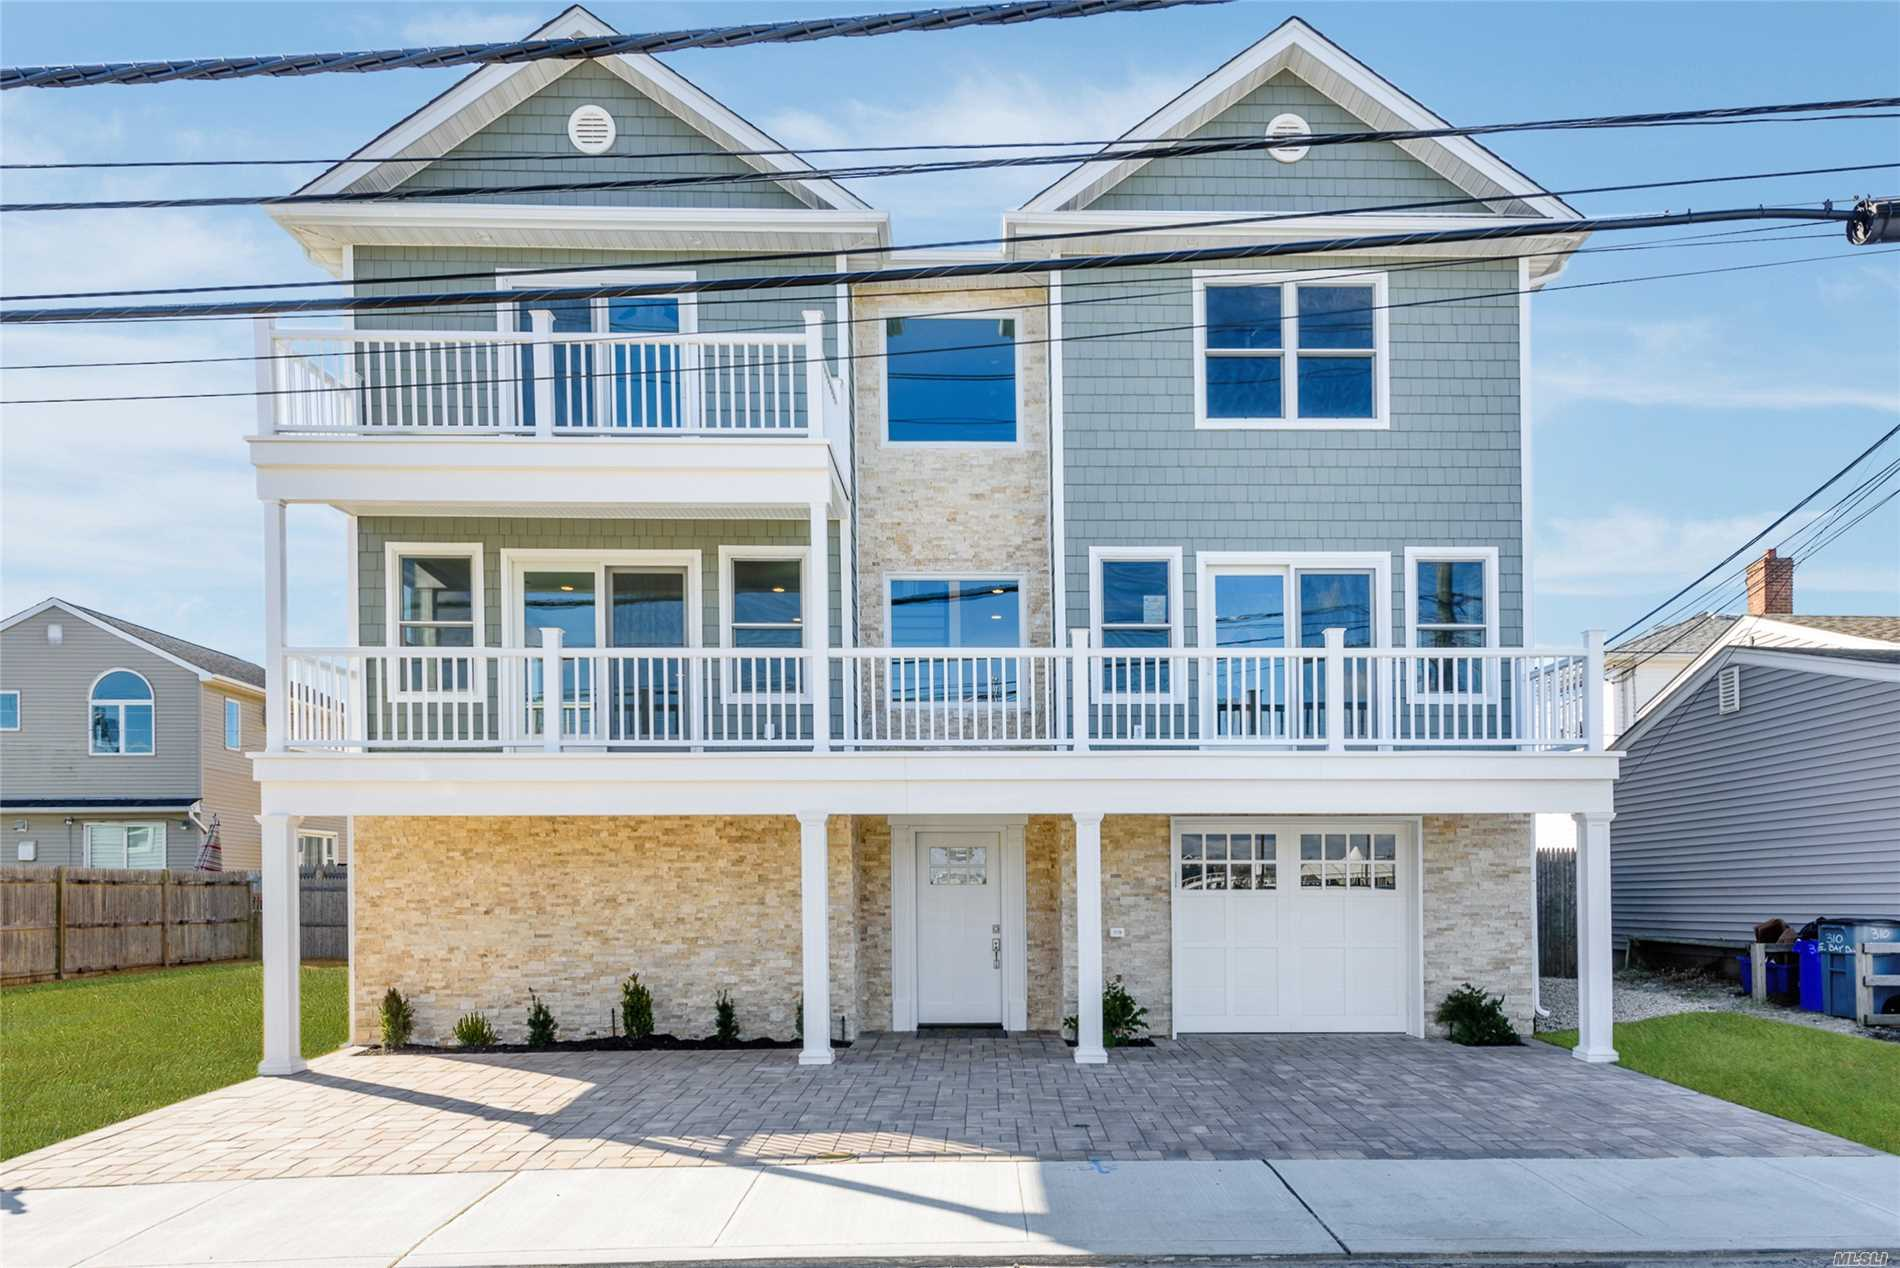 stunning new beautiful colonial home fema compliant, desirable canals location. features all new state of the art finishes; the finest quality craftsmanship, master bedroom suite w/cathedral ceiling, deck, gourmet kitchen w/quartz countertops & stainless steel appliances, top of the line finishes, living room w/deck, formal dining room w/deck & hardwood floors throughout, anderson windows, 2-zone central air & 1200 sq ft garage+storage. beautiful yard! taxes to be independently verified.